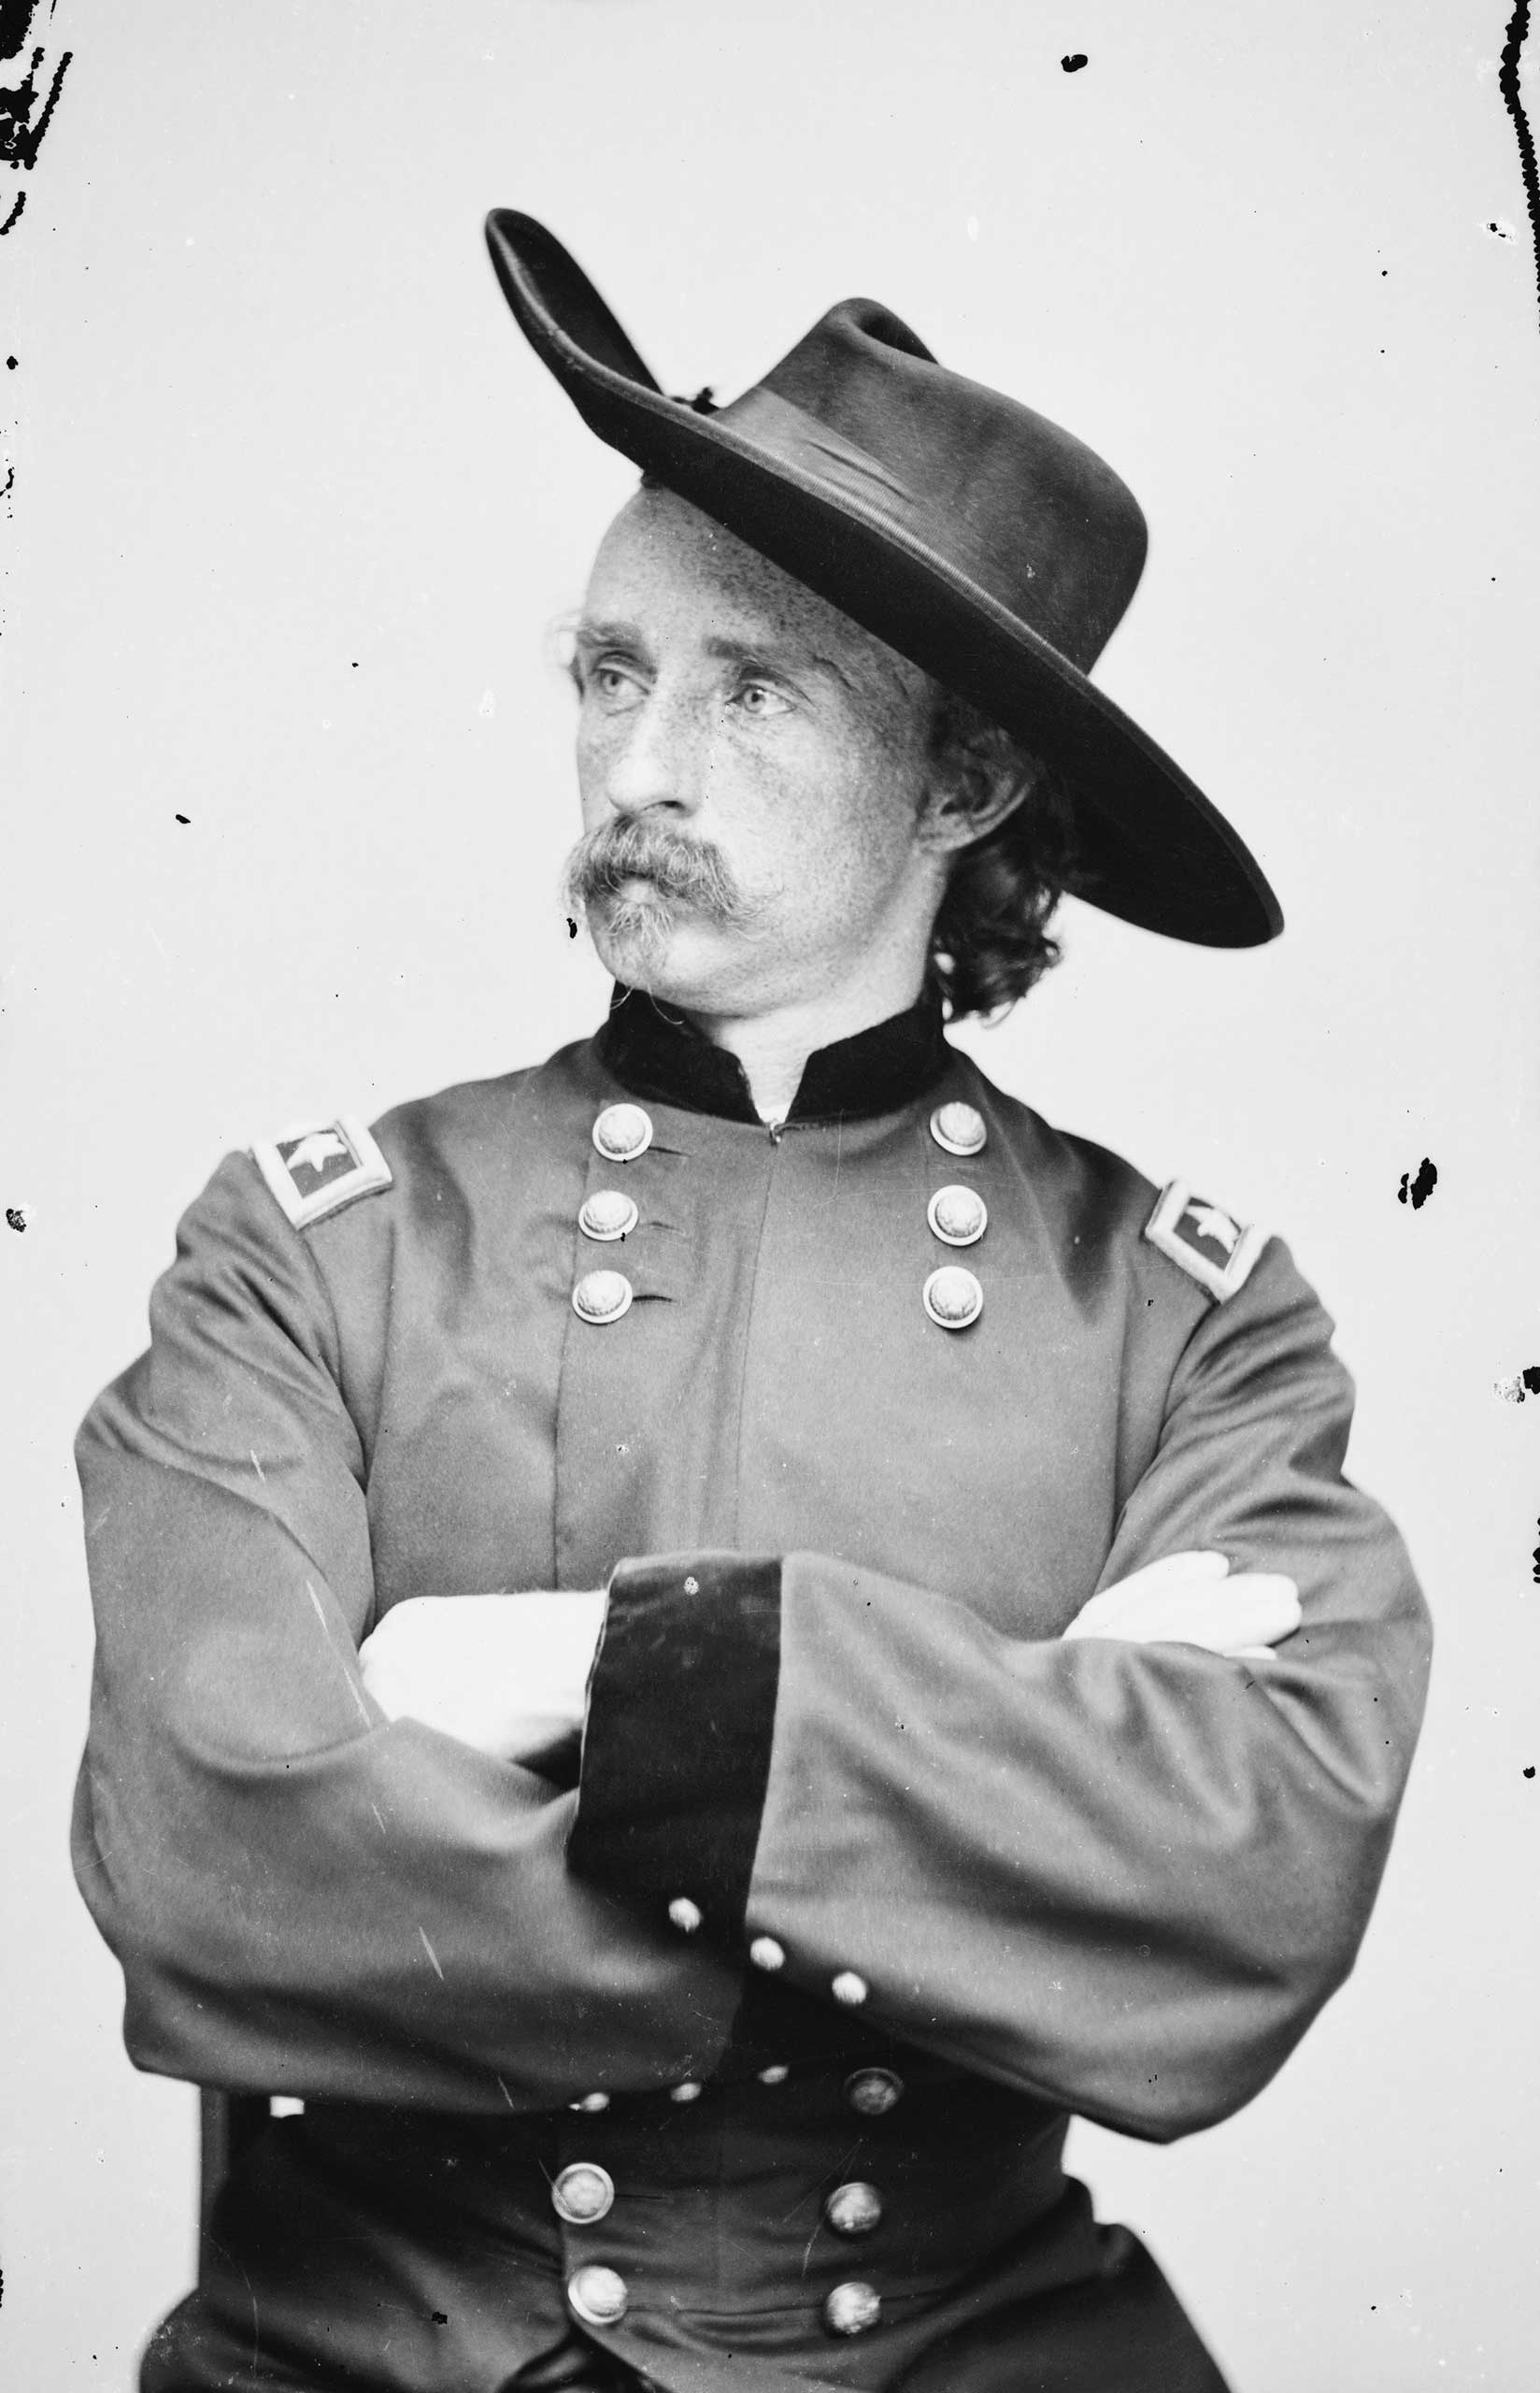 Portrait of Maj. Gen. George A. Custer, officer of the Federal Army, 1865.